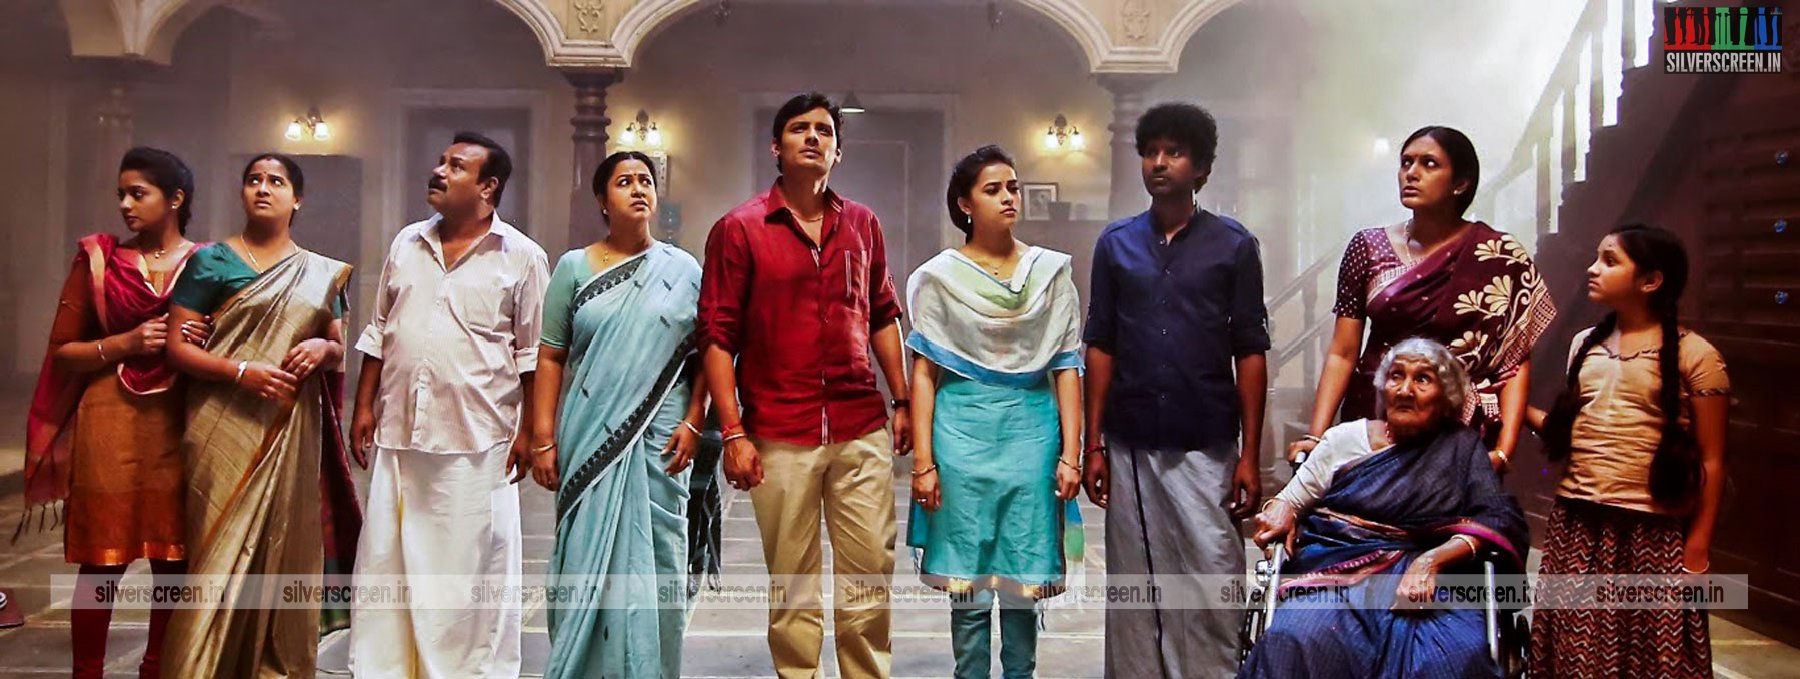 sangili bungili kadhava thorae movie review